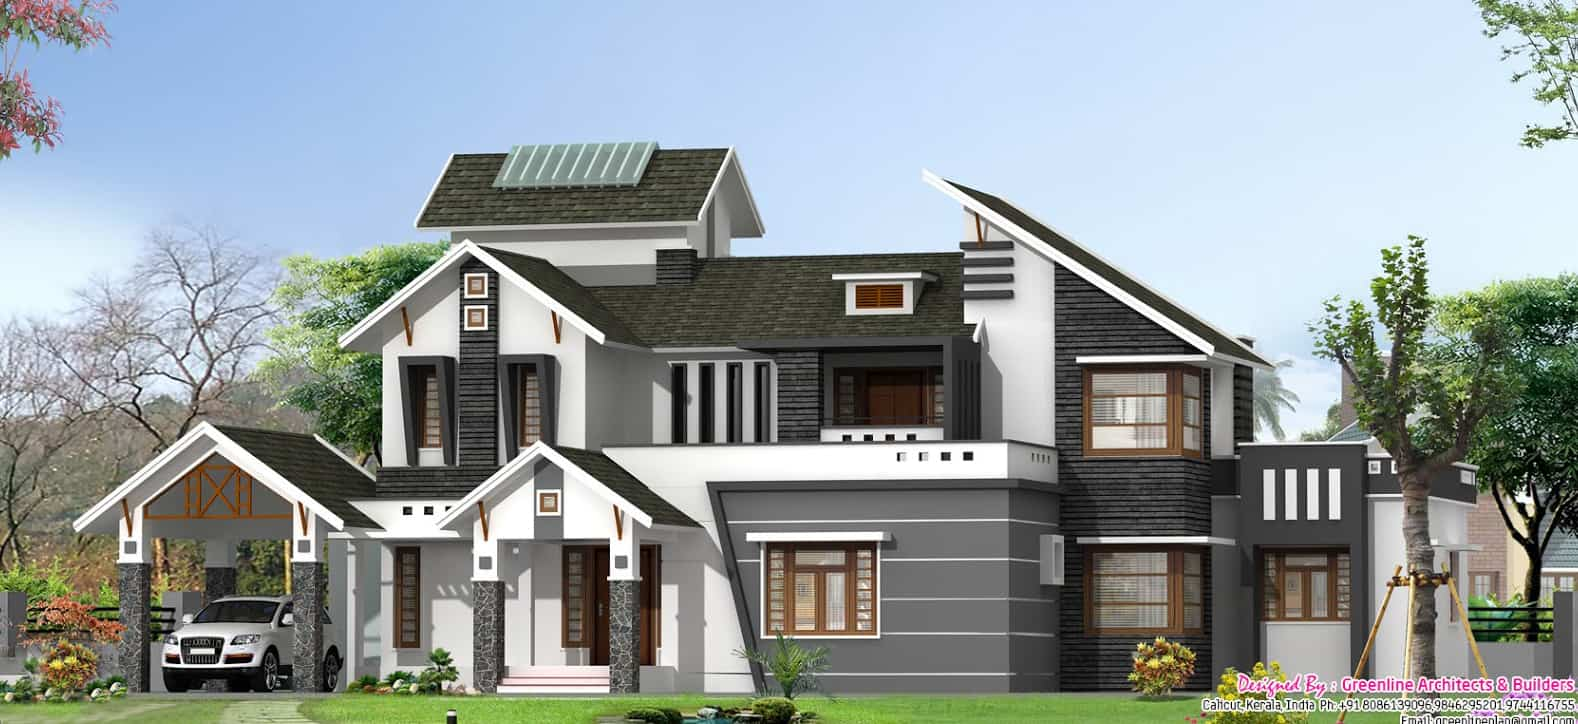 Unique house designs keralahouseplanner - New house design ...